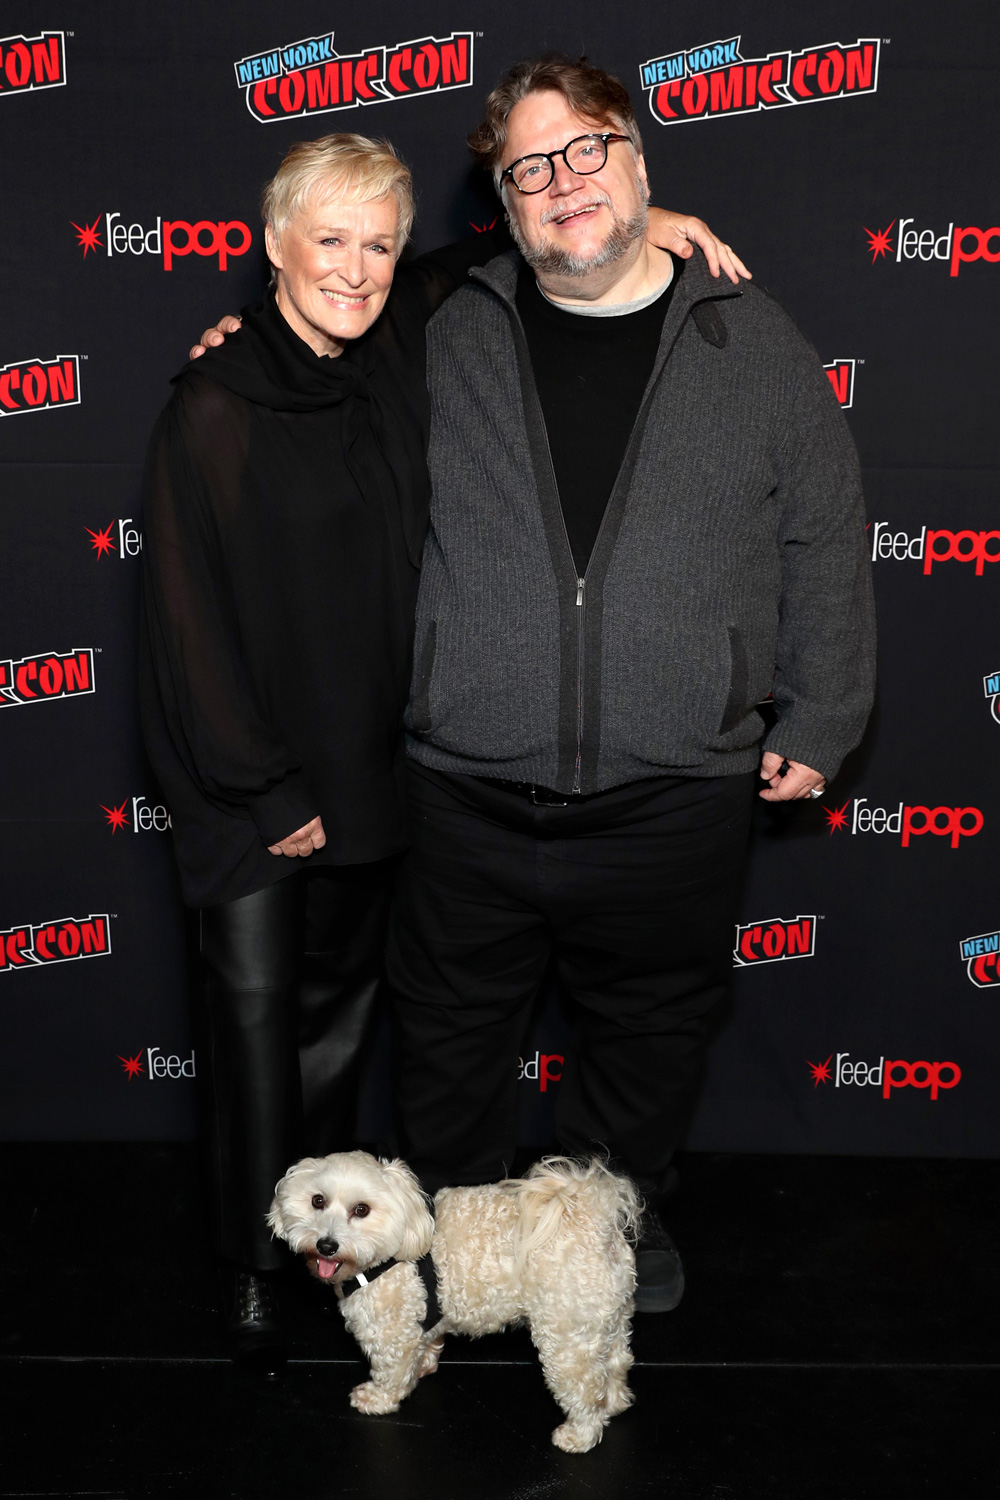 Glenn Close and Guillermo del Toro pose at DreamWorks Tales of Arcadia: 3Below panel during New York Comic Con '18. (Photo: Cindy Ord/Getty Images for DreamWorks Animation Television)